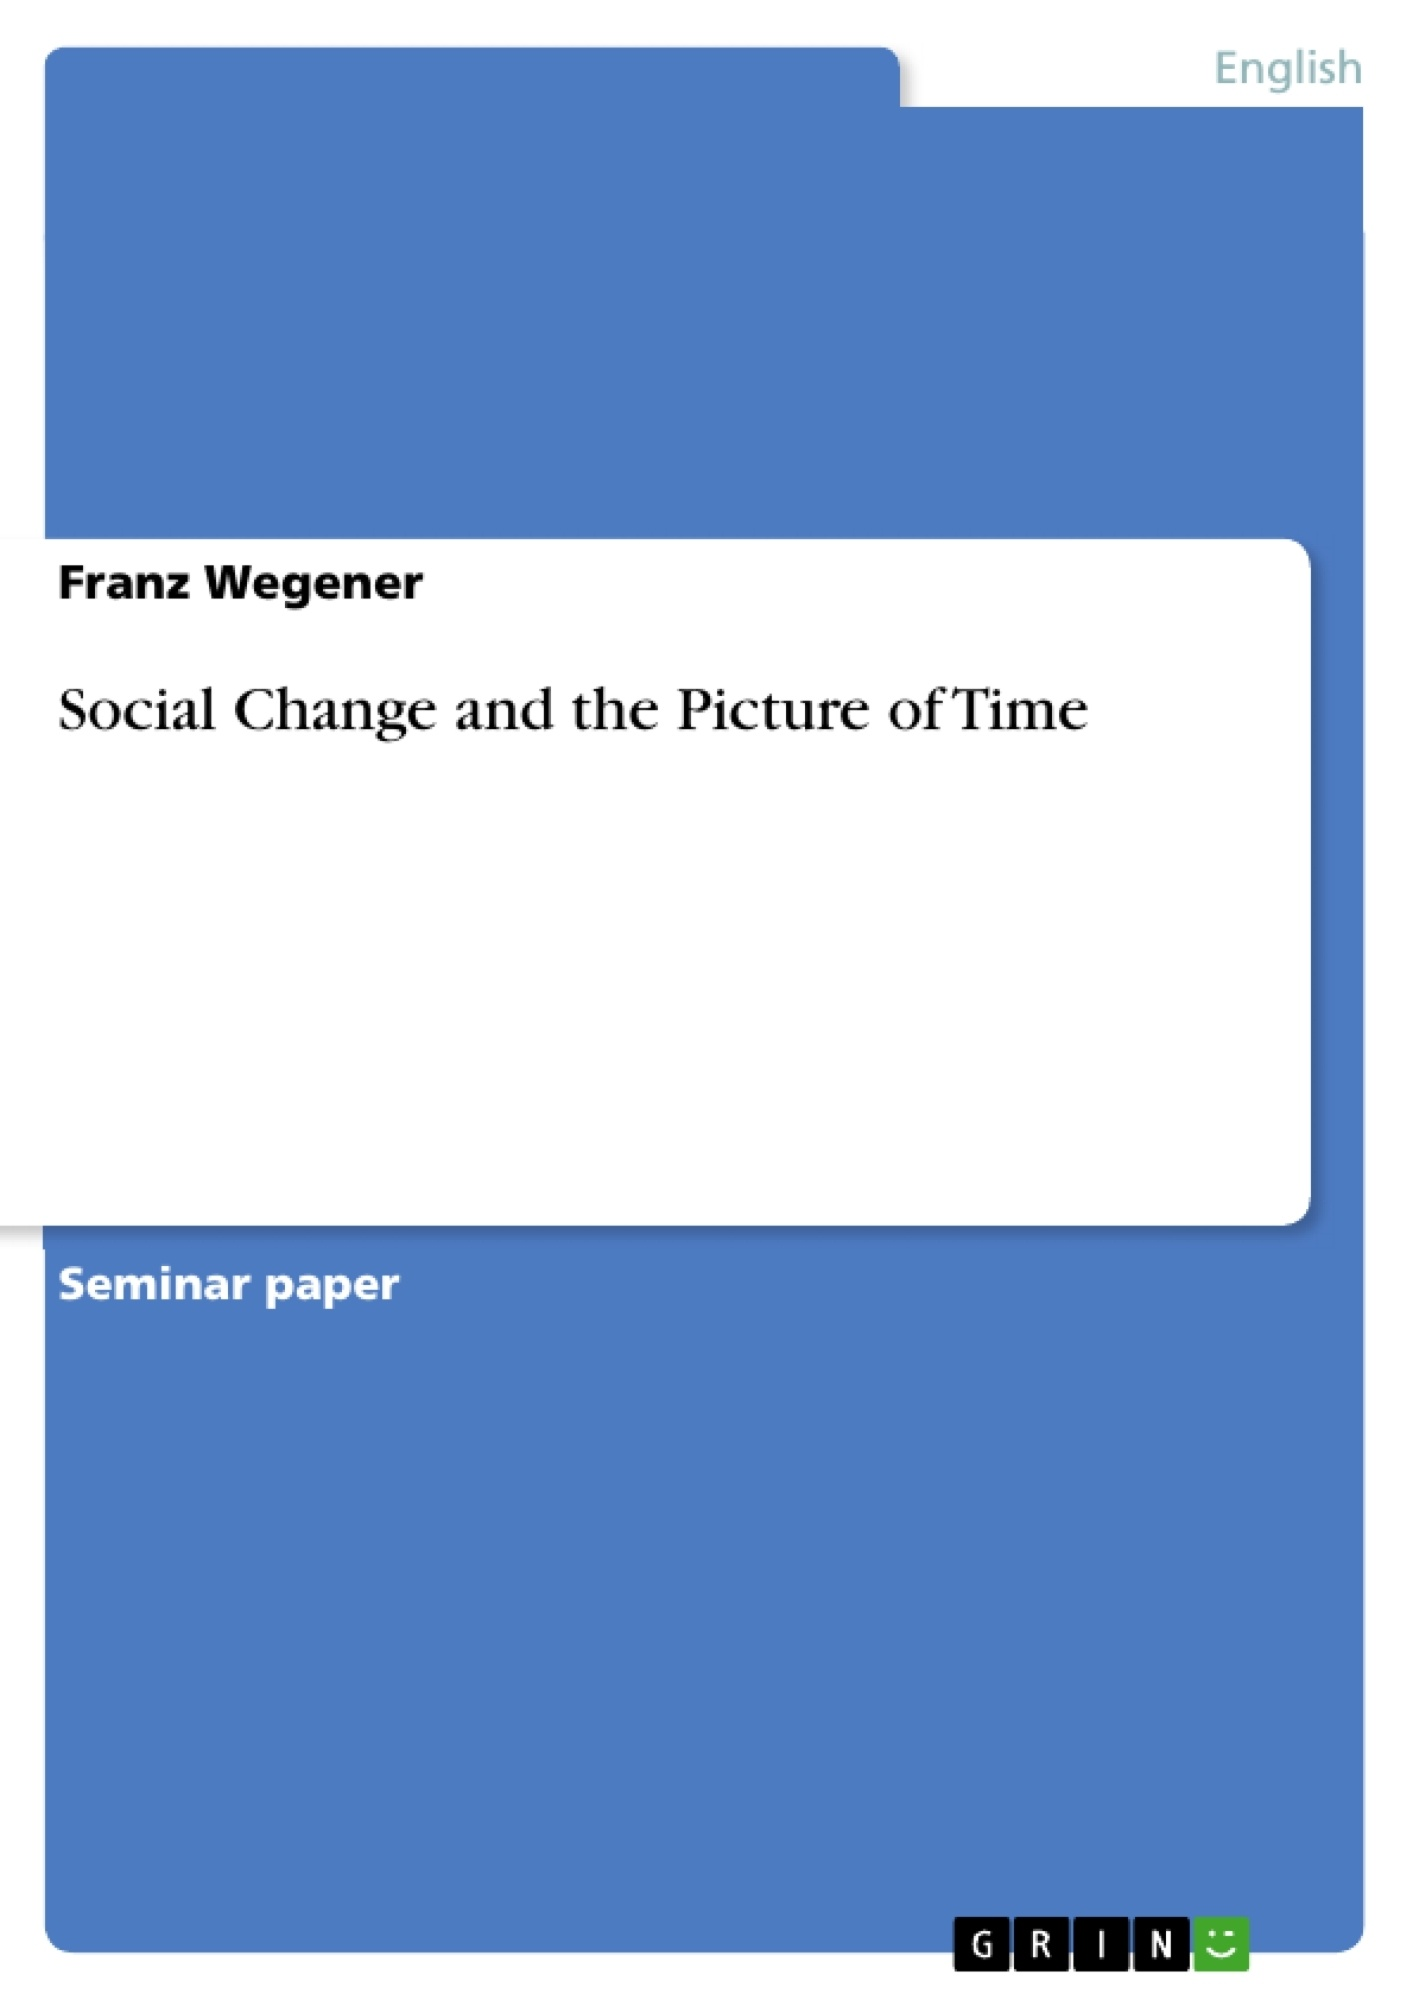 Title: Social Change and the Picture of Time